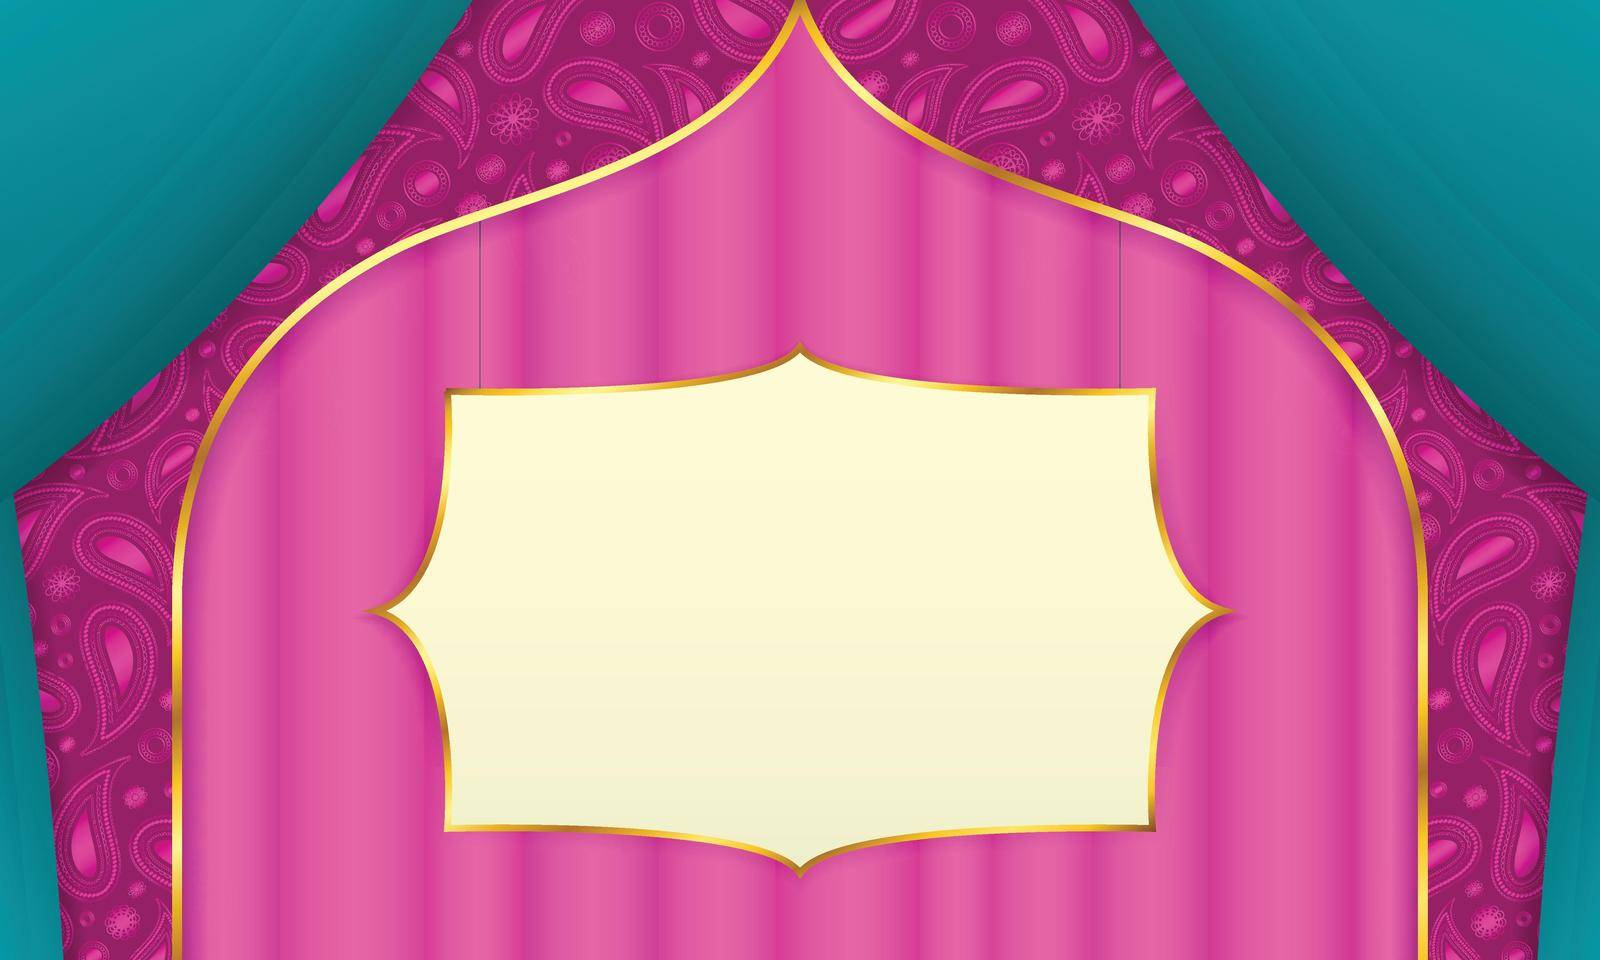 Pink background with curtains and paisley decoration, in indian style. Blank blackboard with gold frame in the middle.